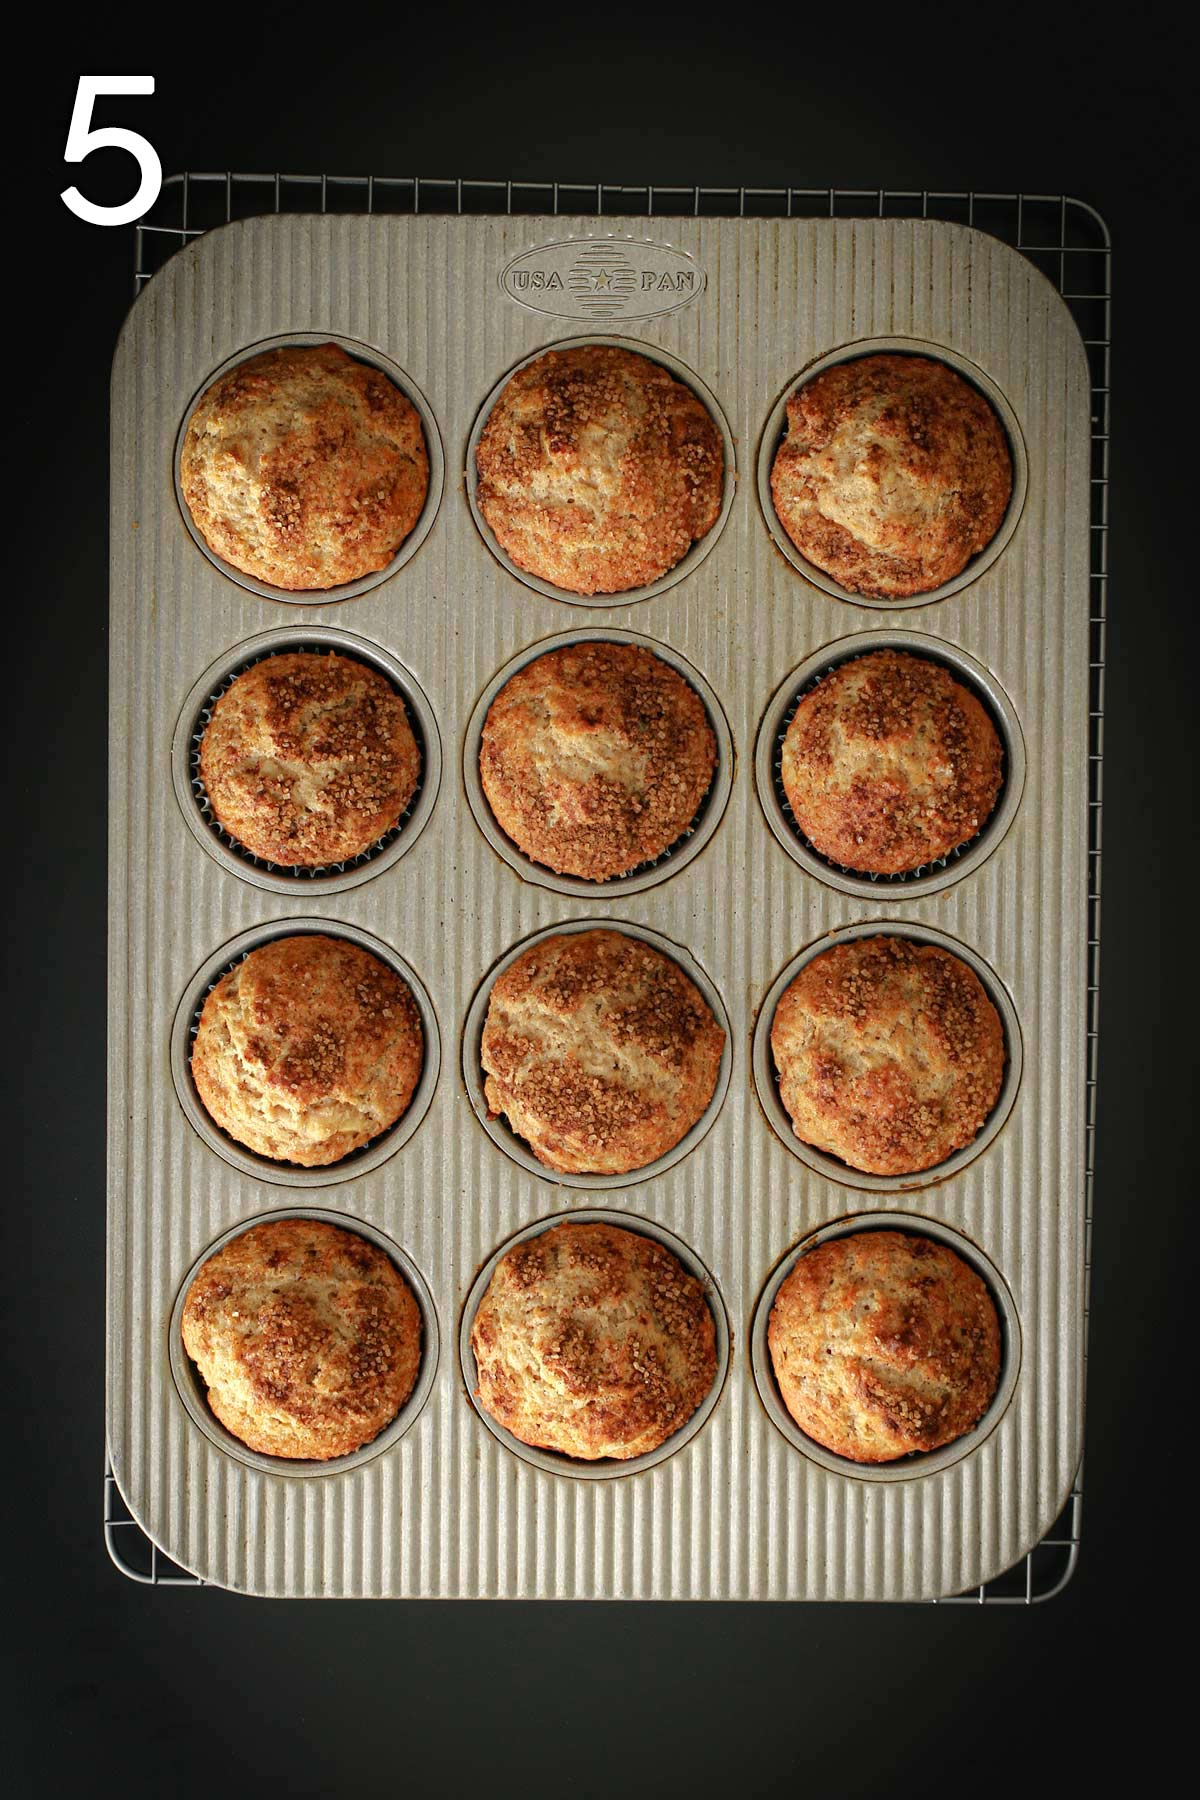 cinnamon apple muffins baked in muffin tin.